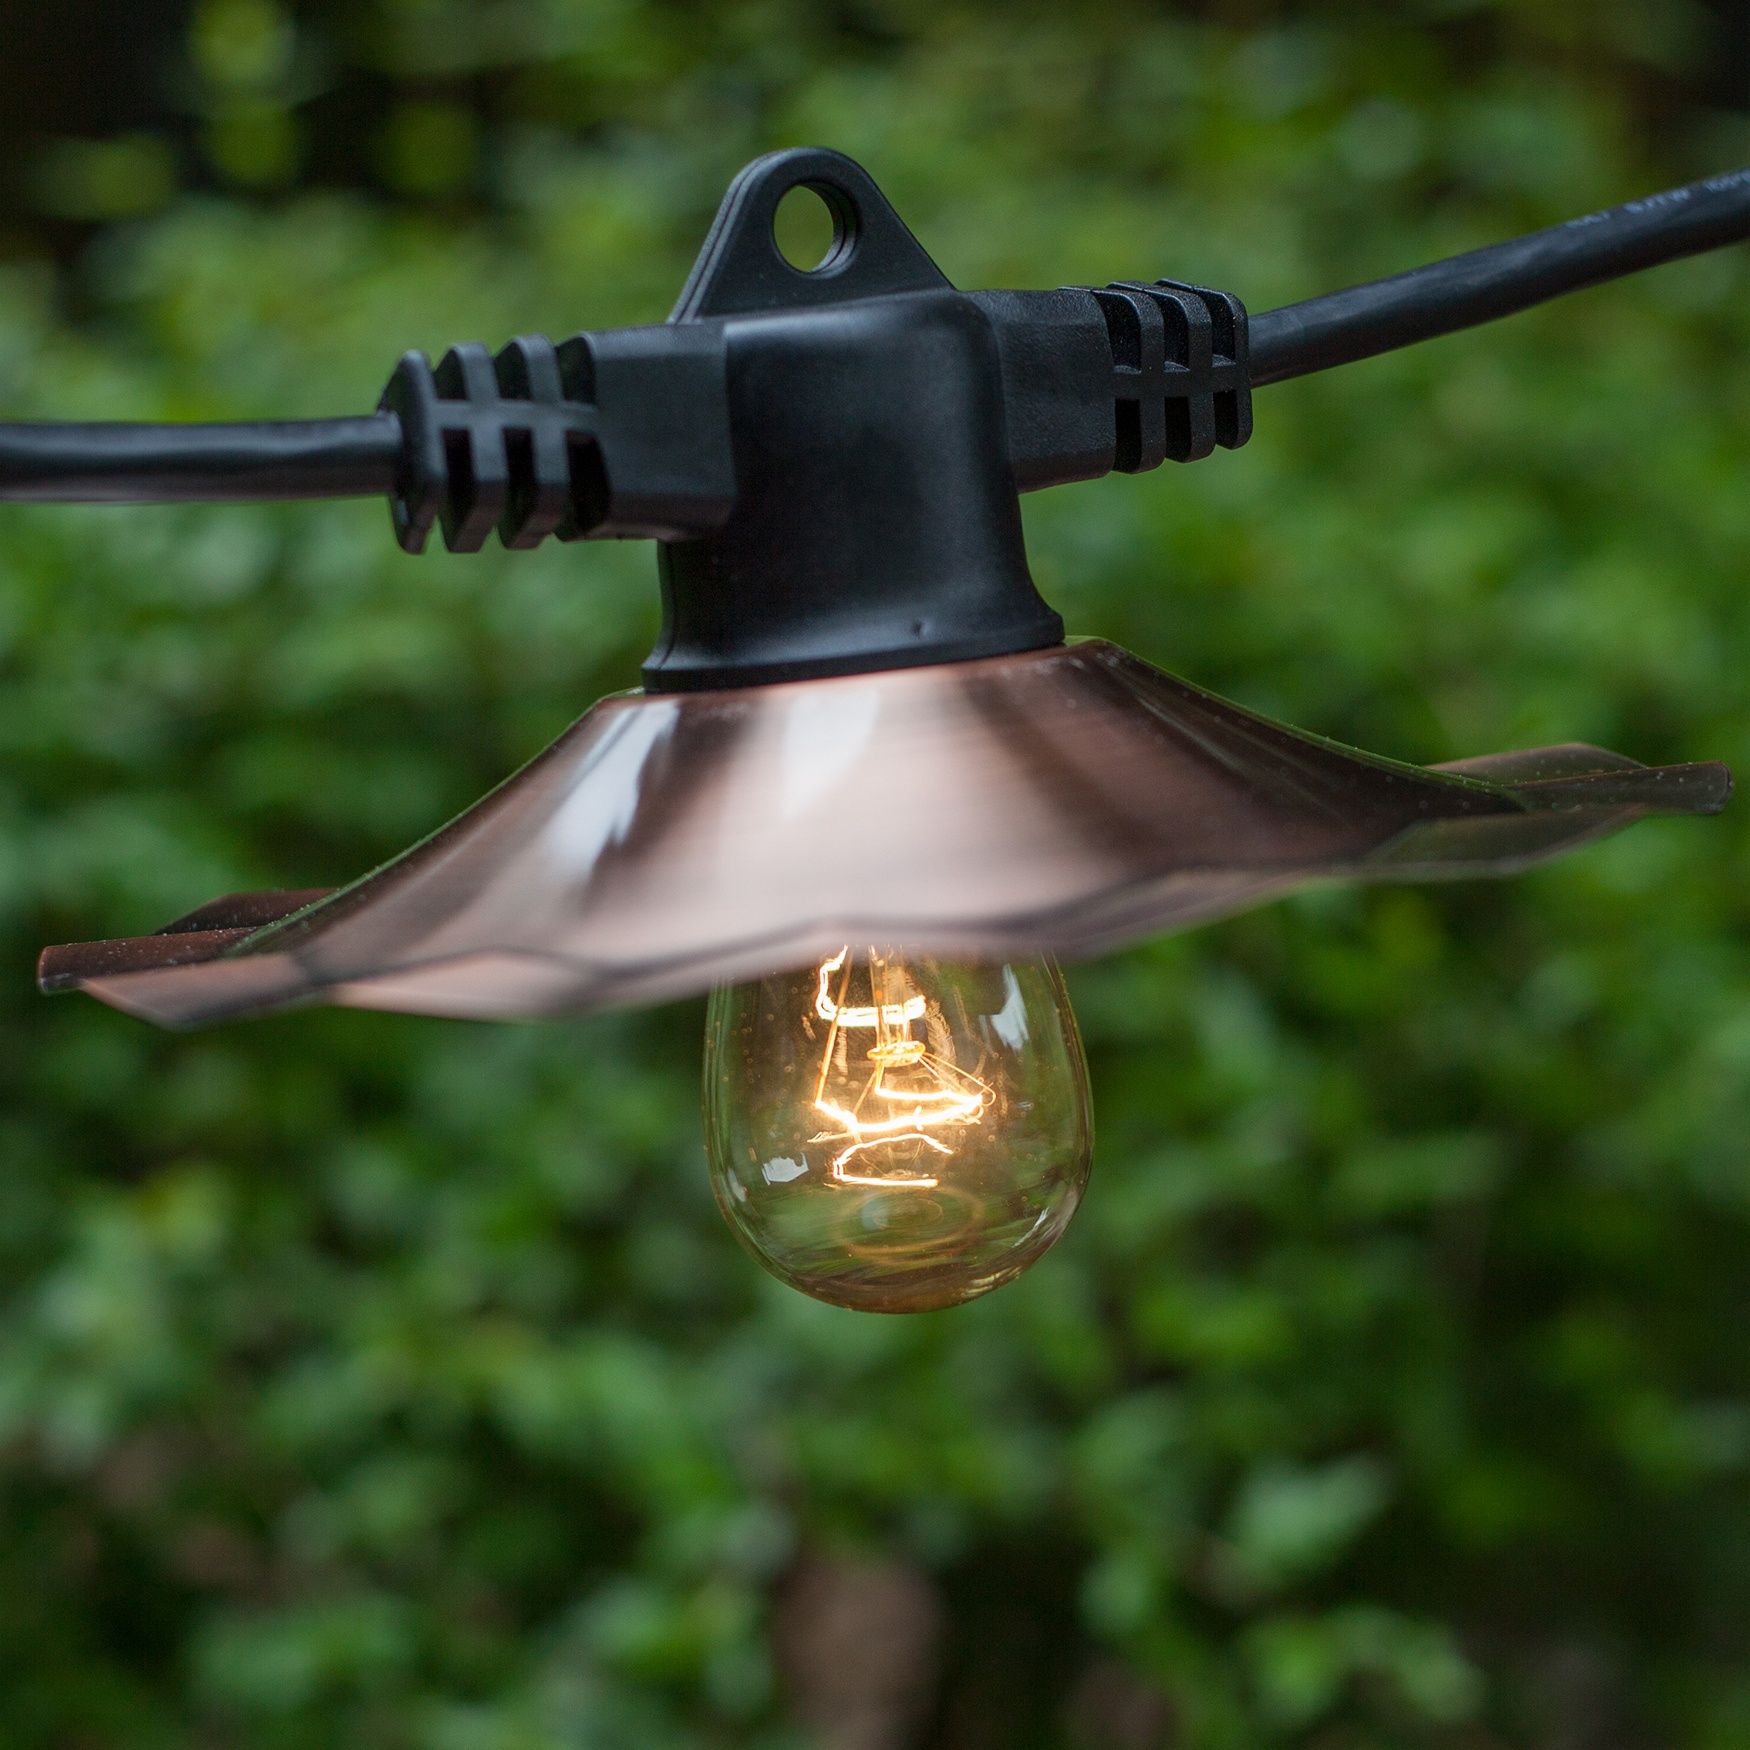 Commercial Patio Light String E26 Medium Sockets Includes Copper Shadesblack Wire Yard Envy